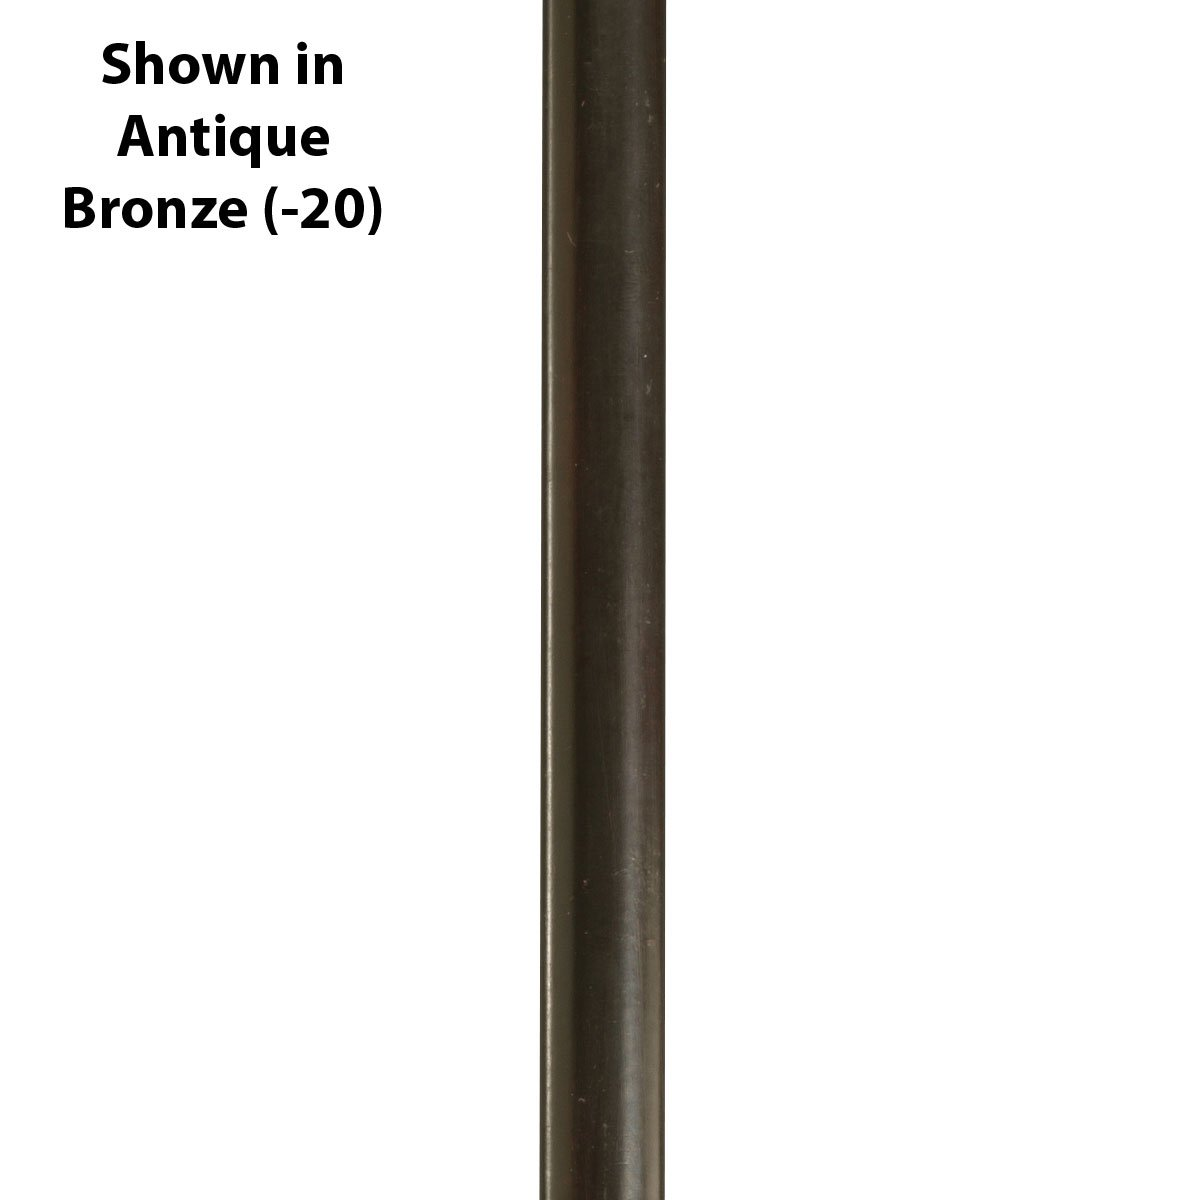 Progress Lighting P8601-09 Stem Extension Kit with 2-12-Inch and 2-15-Inch Stems Included, Brushed Nickel